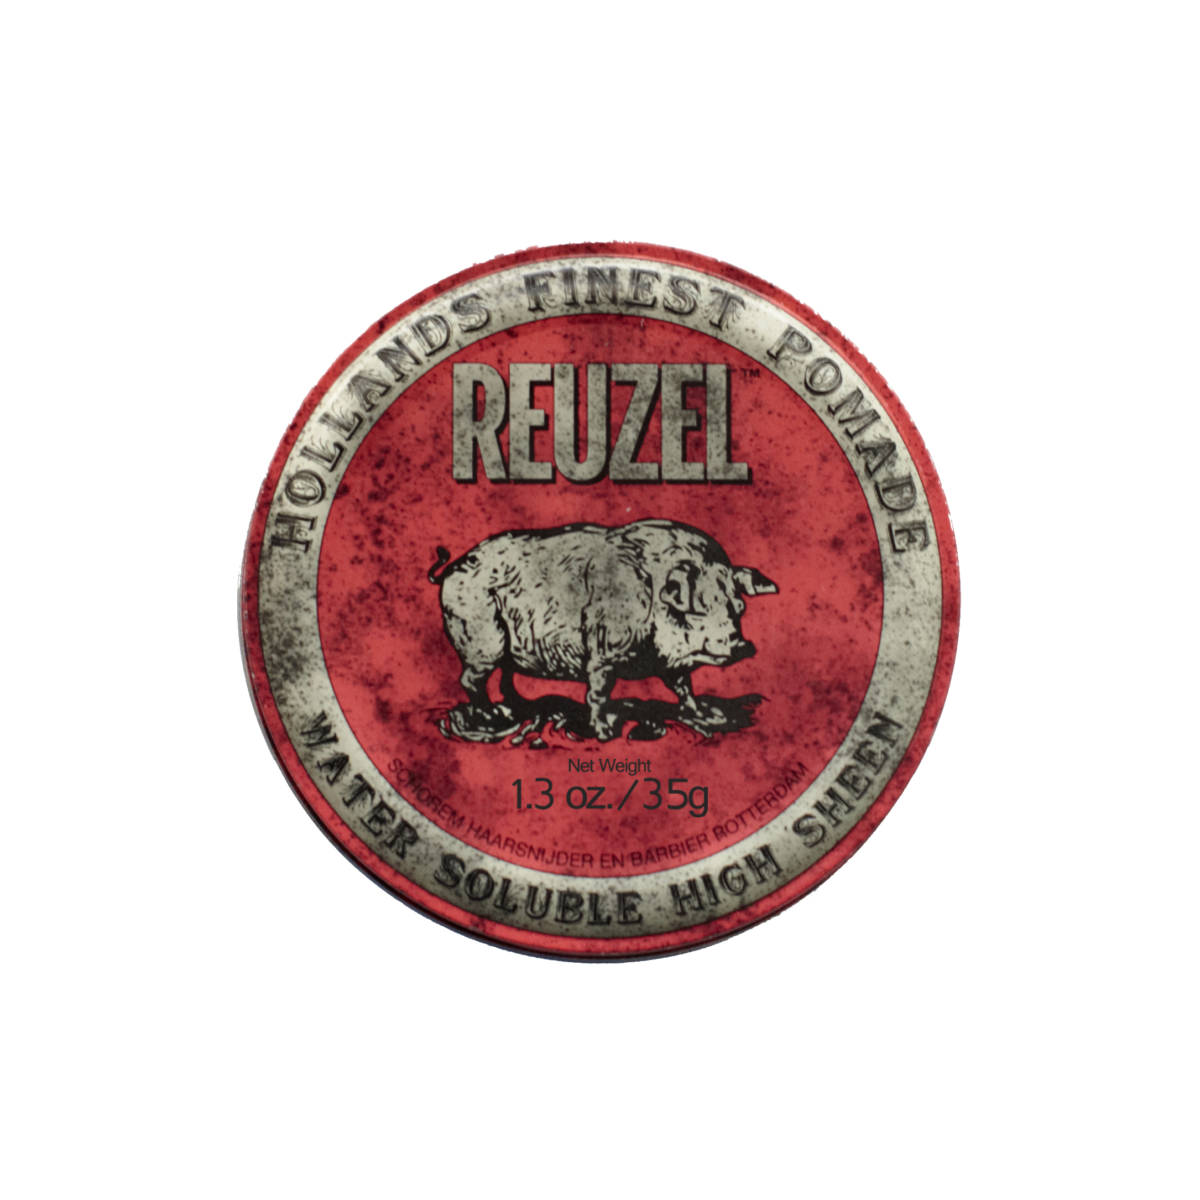 Tuotekuva: Reuzel Red – Water Soluble High Sheen Pomade (35 g) matkakoko